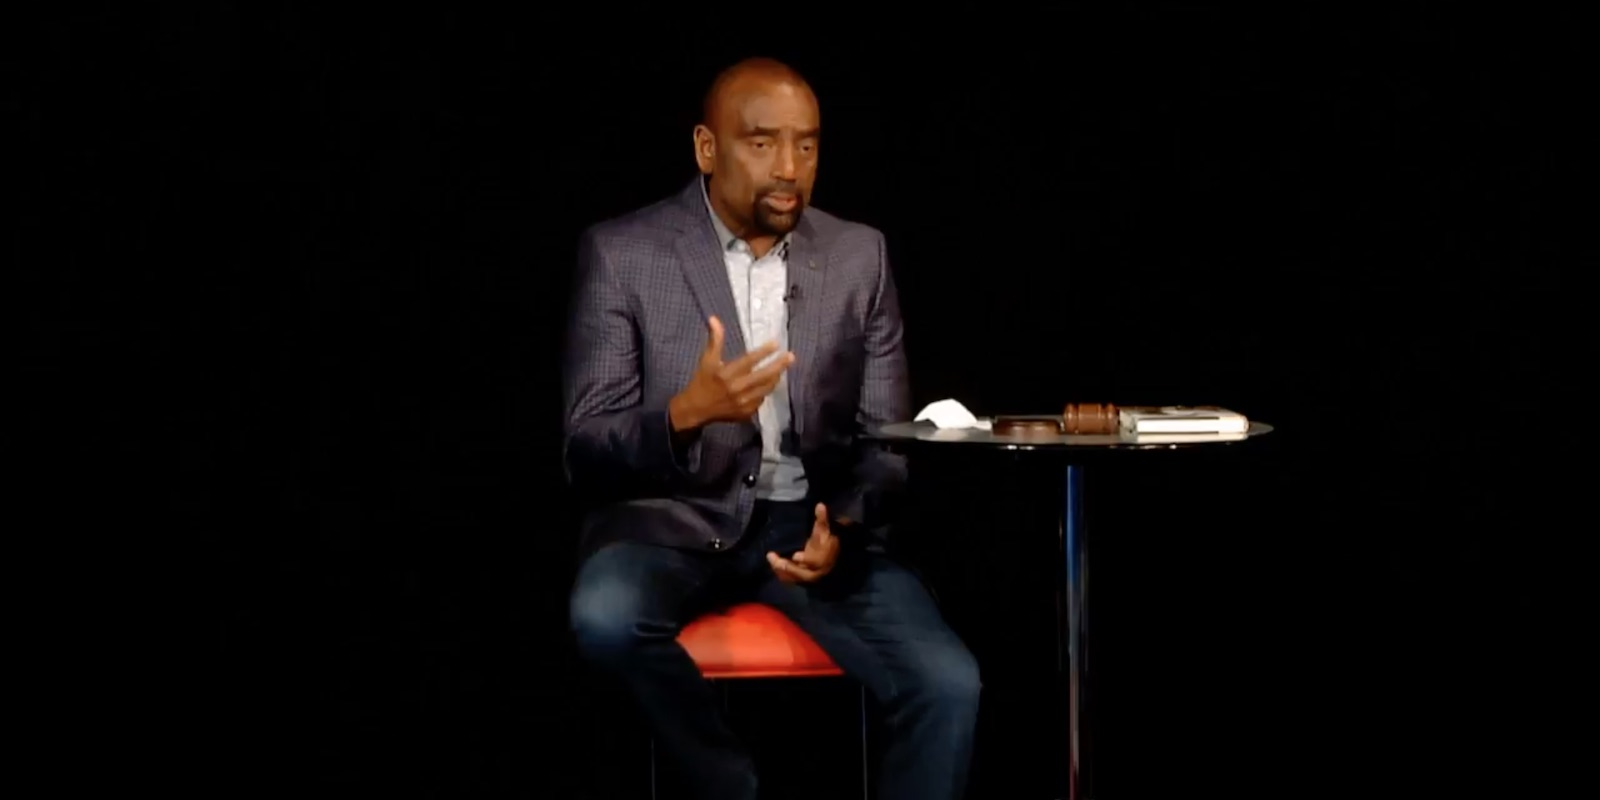 Jesse talks about faith, forgiveness, and being born again